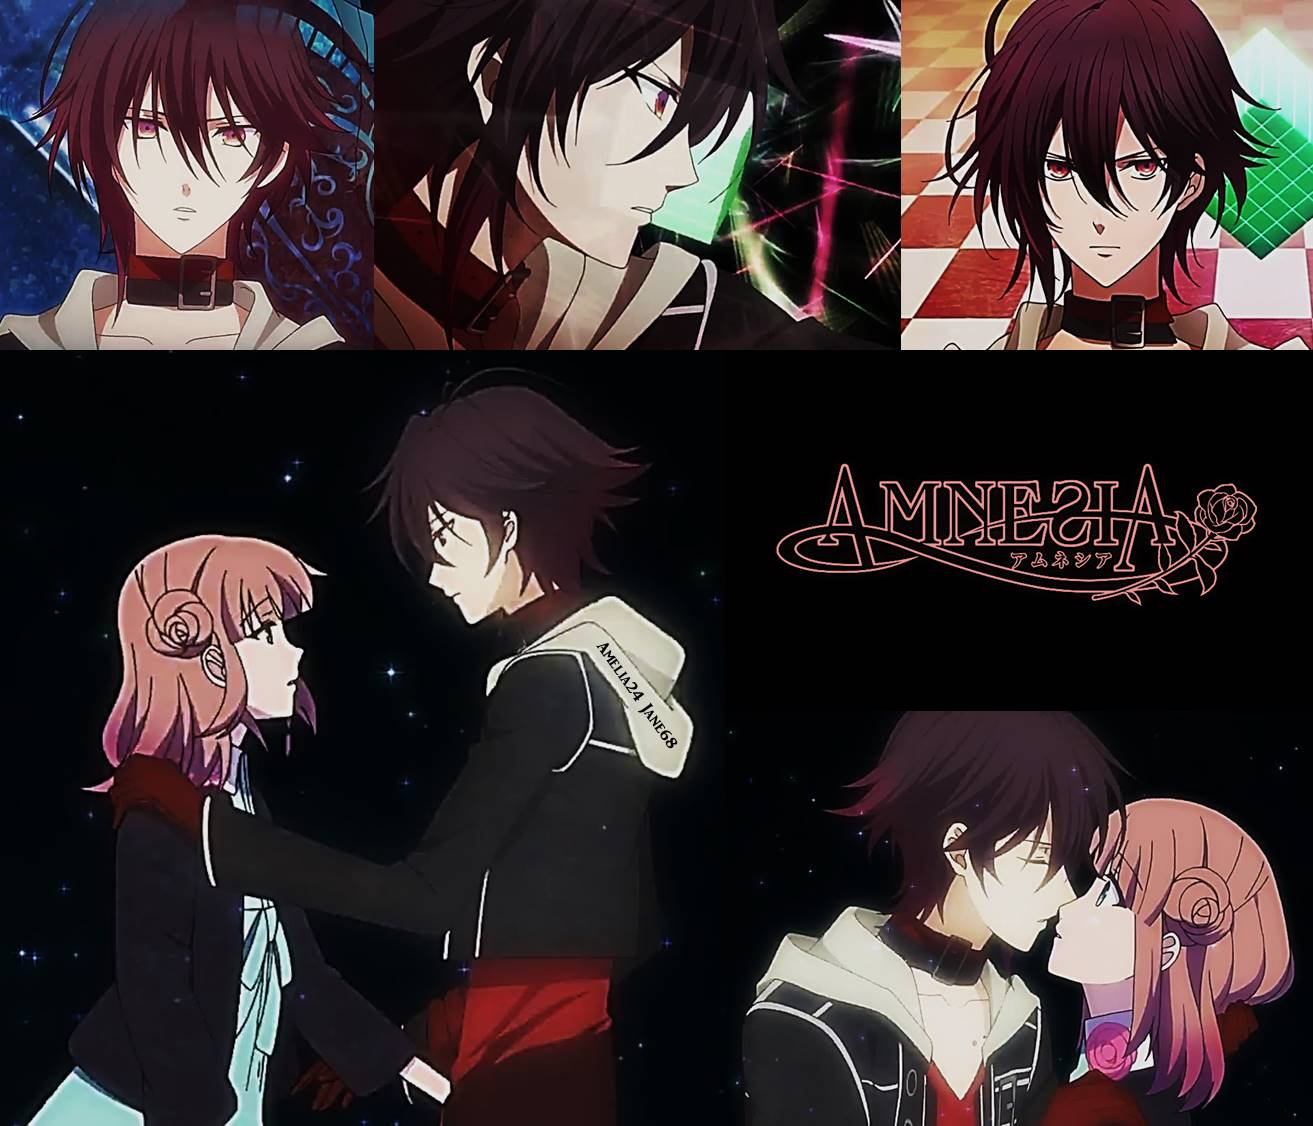 Anime Guys Images Amnesia Shin And Heroine HD Wallpaper Background Photos